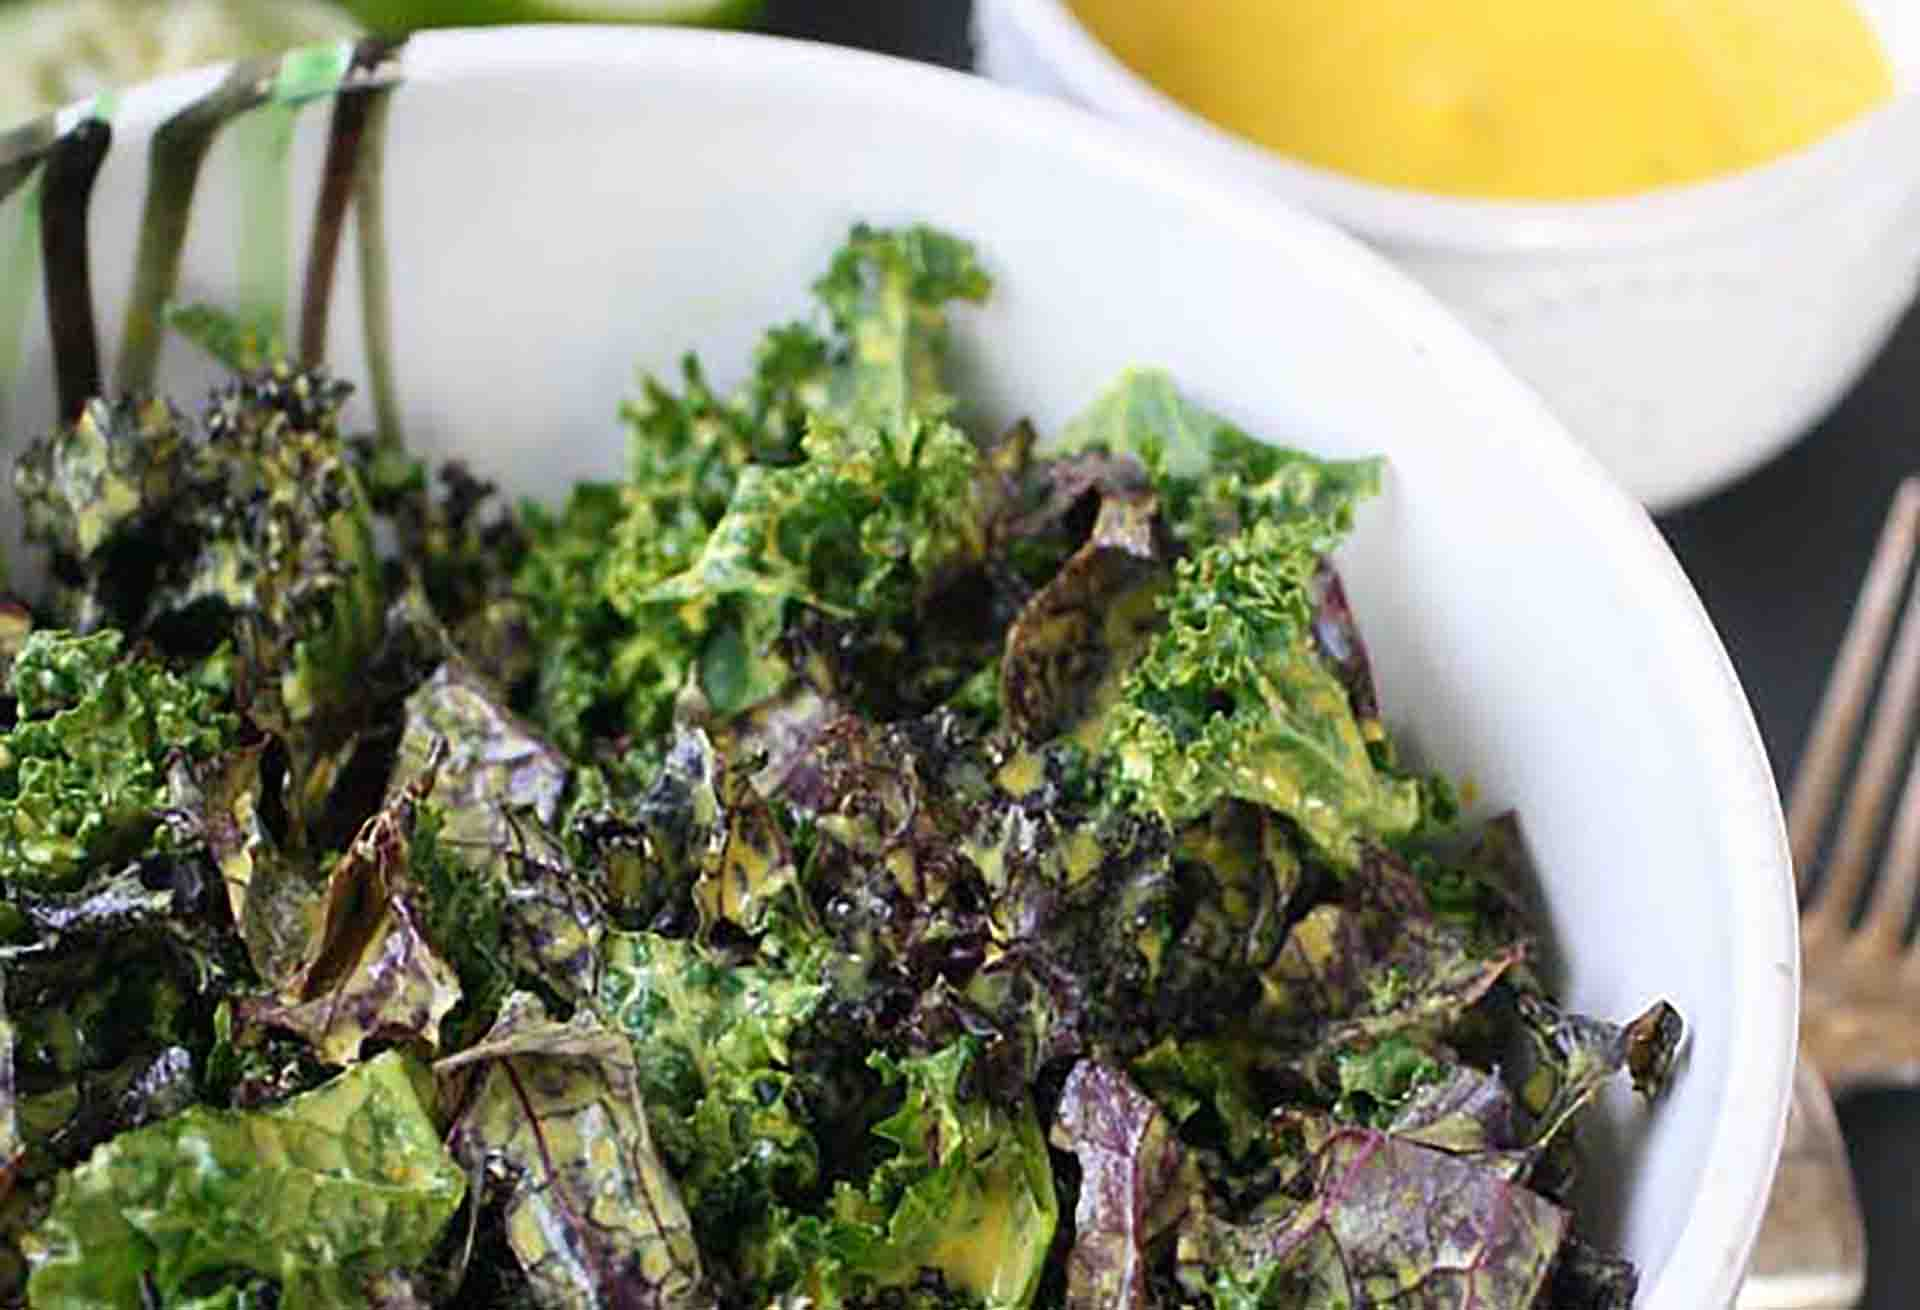 Closeup of a bowl of kale salad with a bowl of dressing in the background.